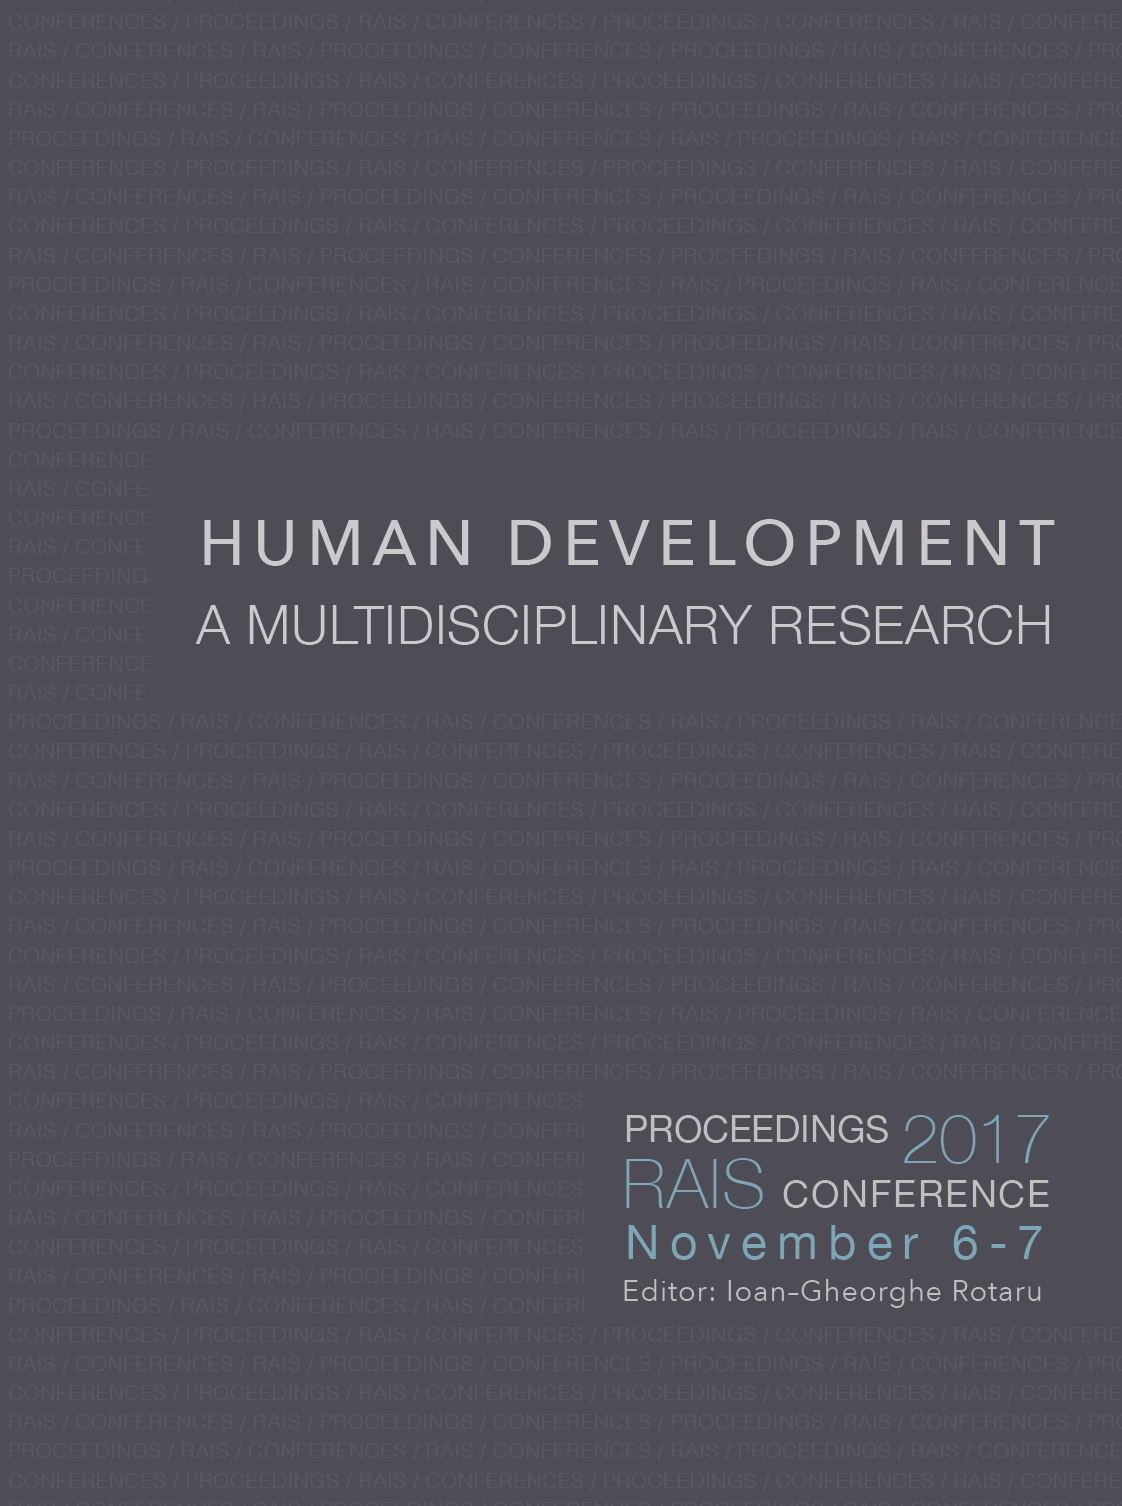 Human Development – A Multidisciplinary Research Cover Image